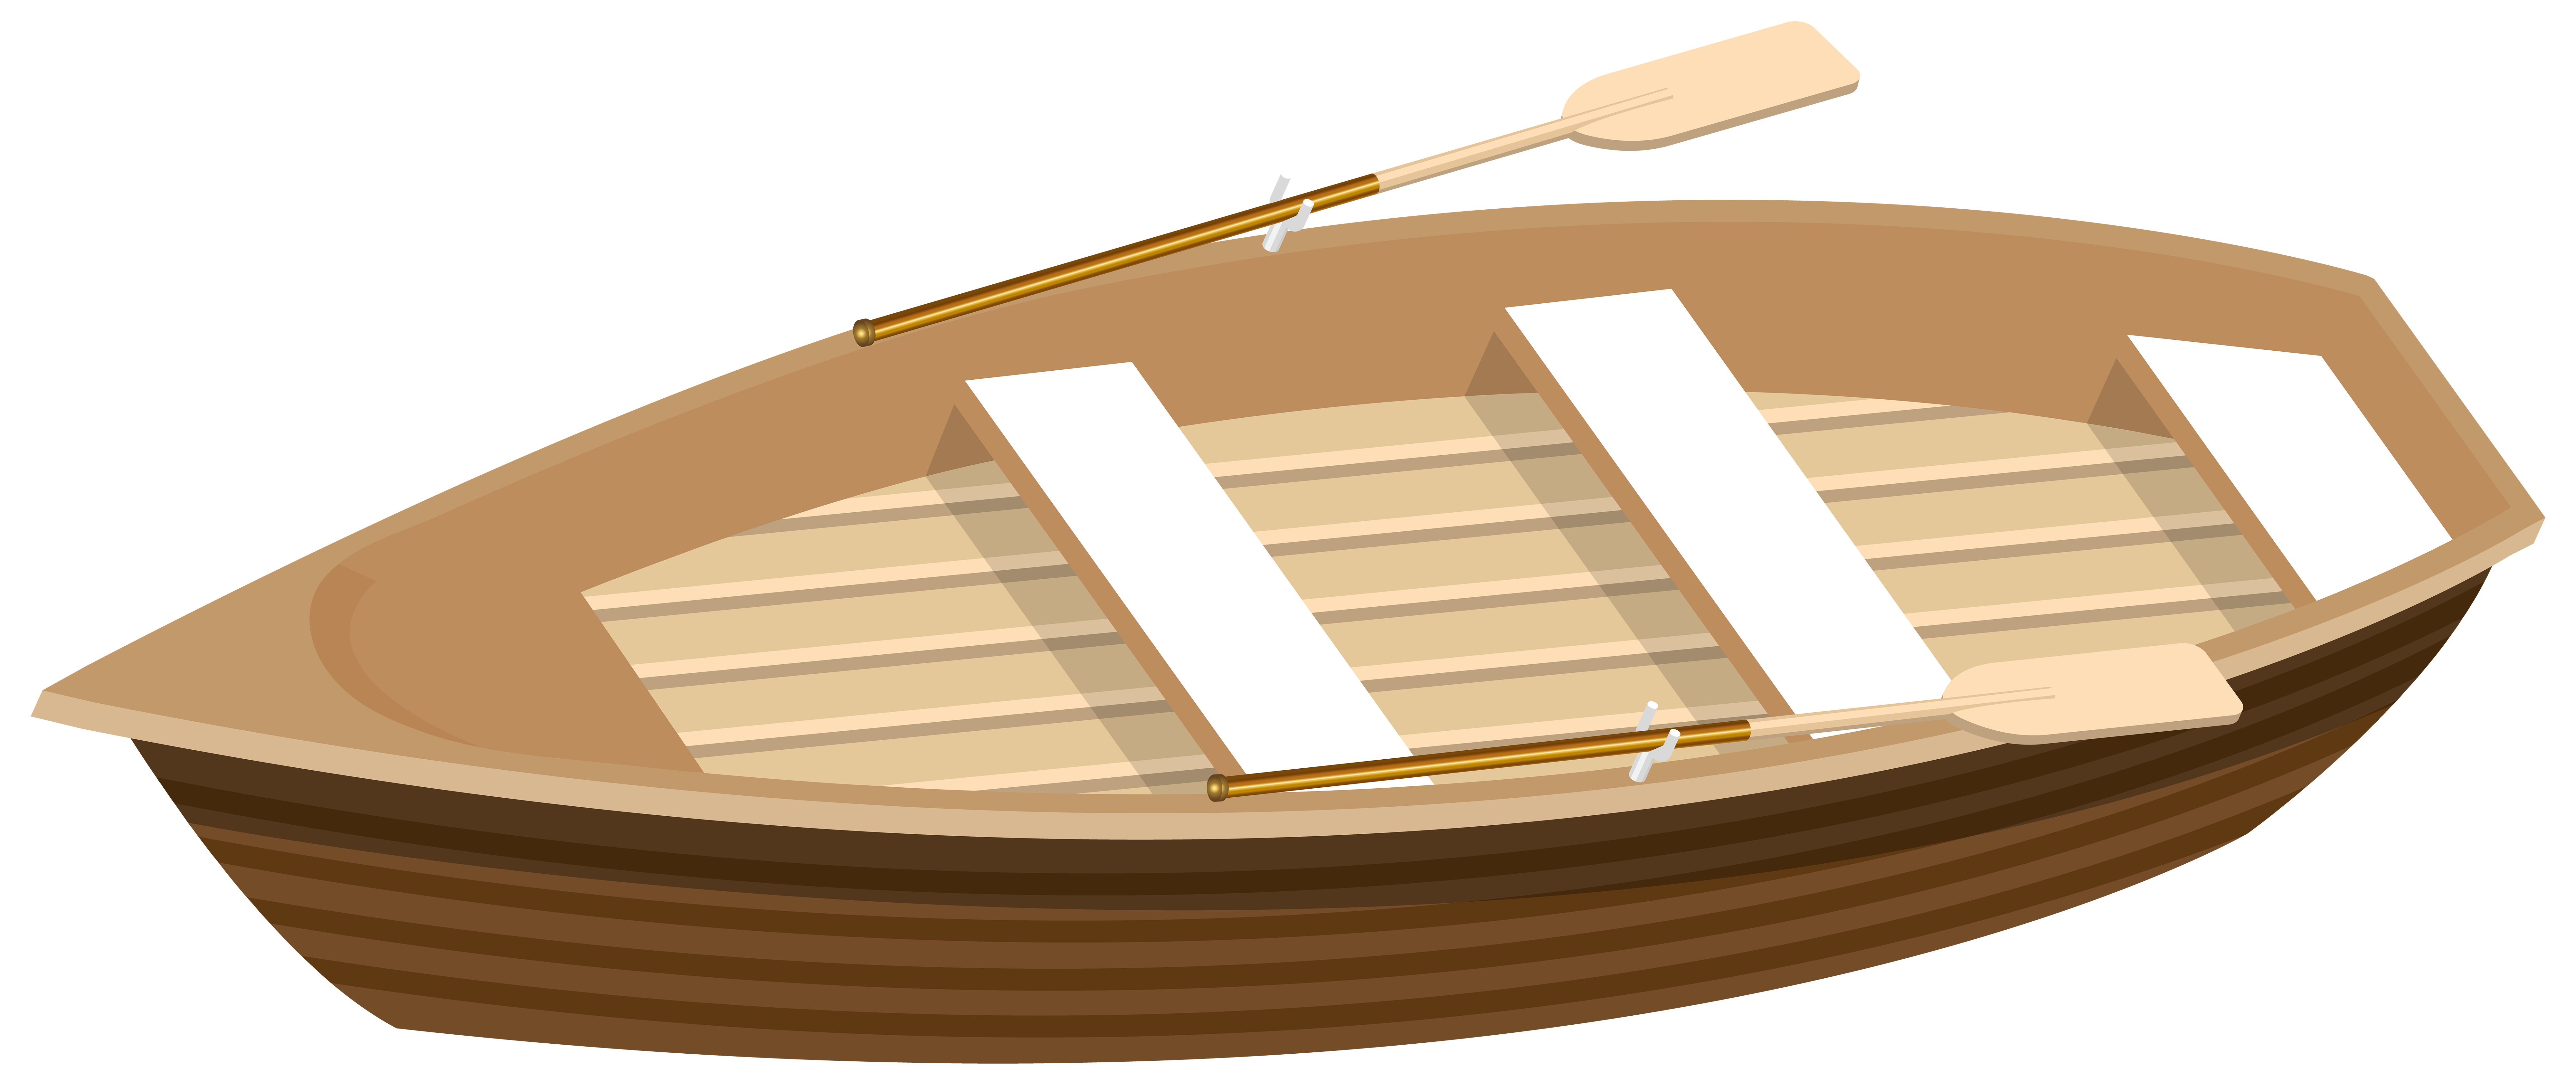 Boating clipart transparent background. Wooden boat png clip